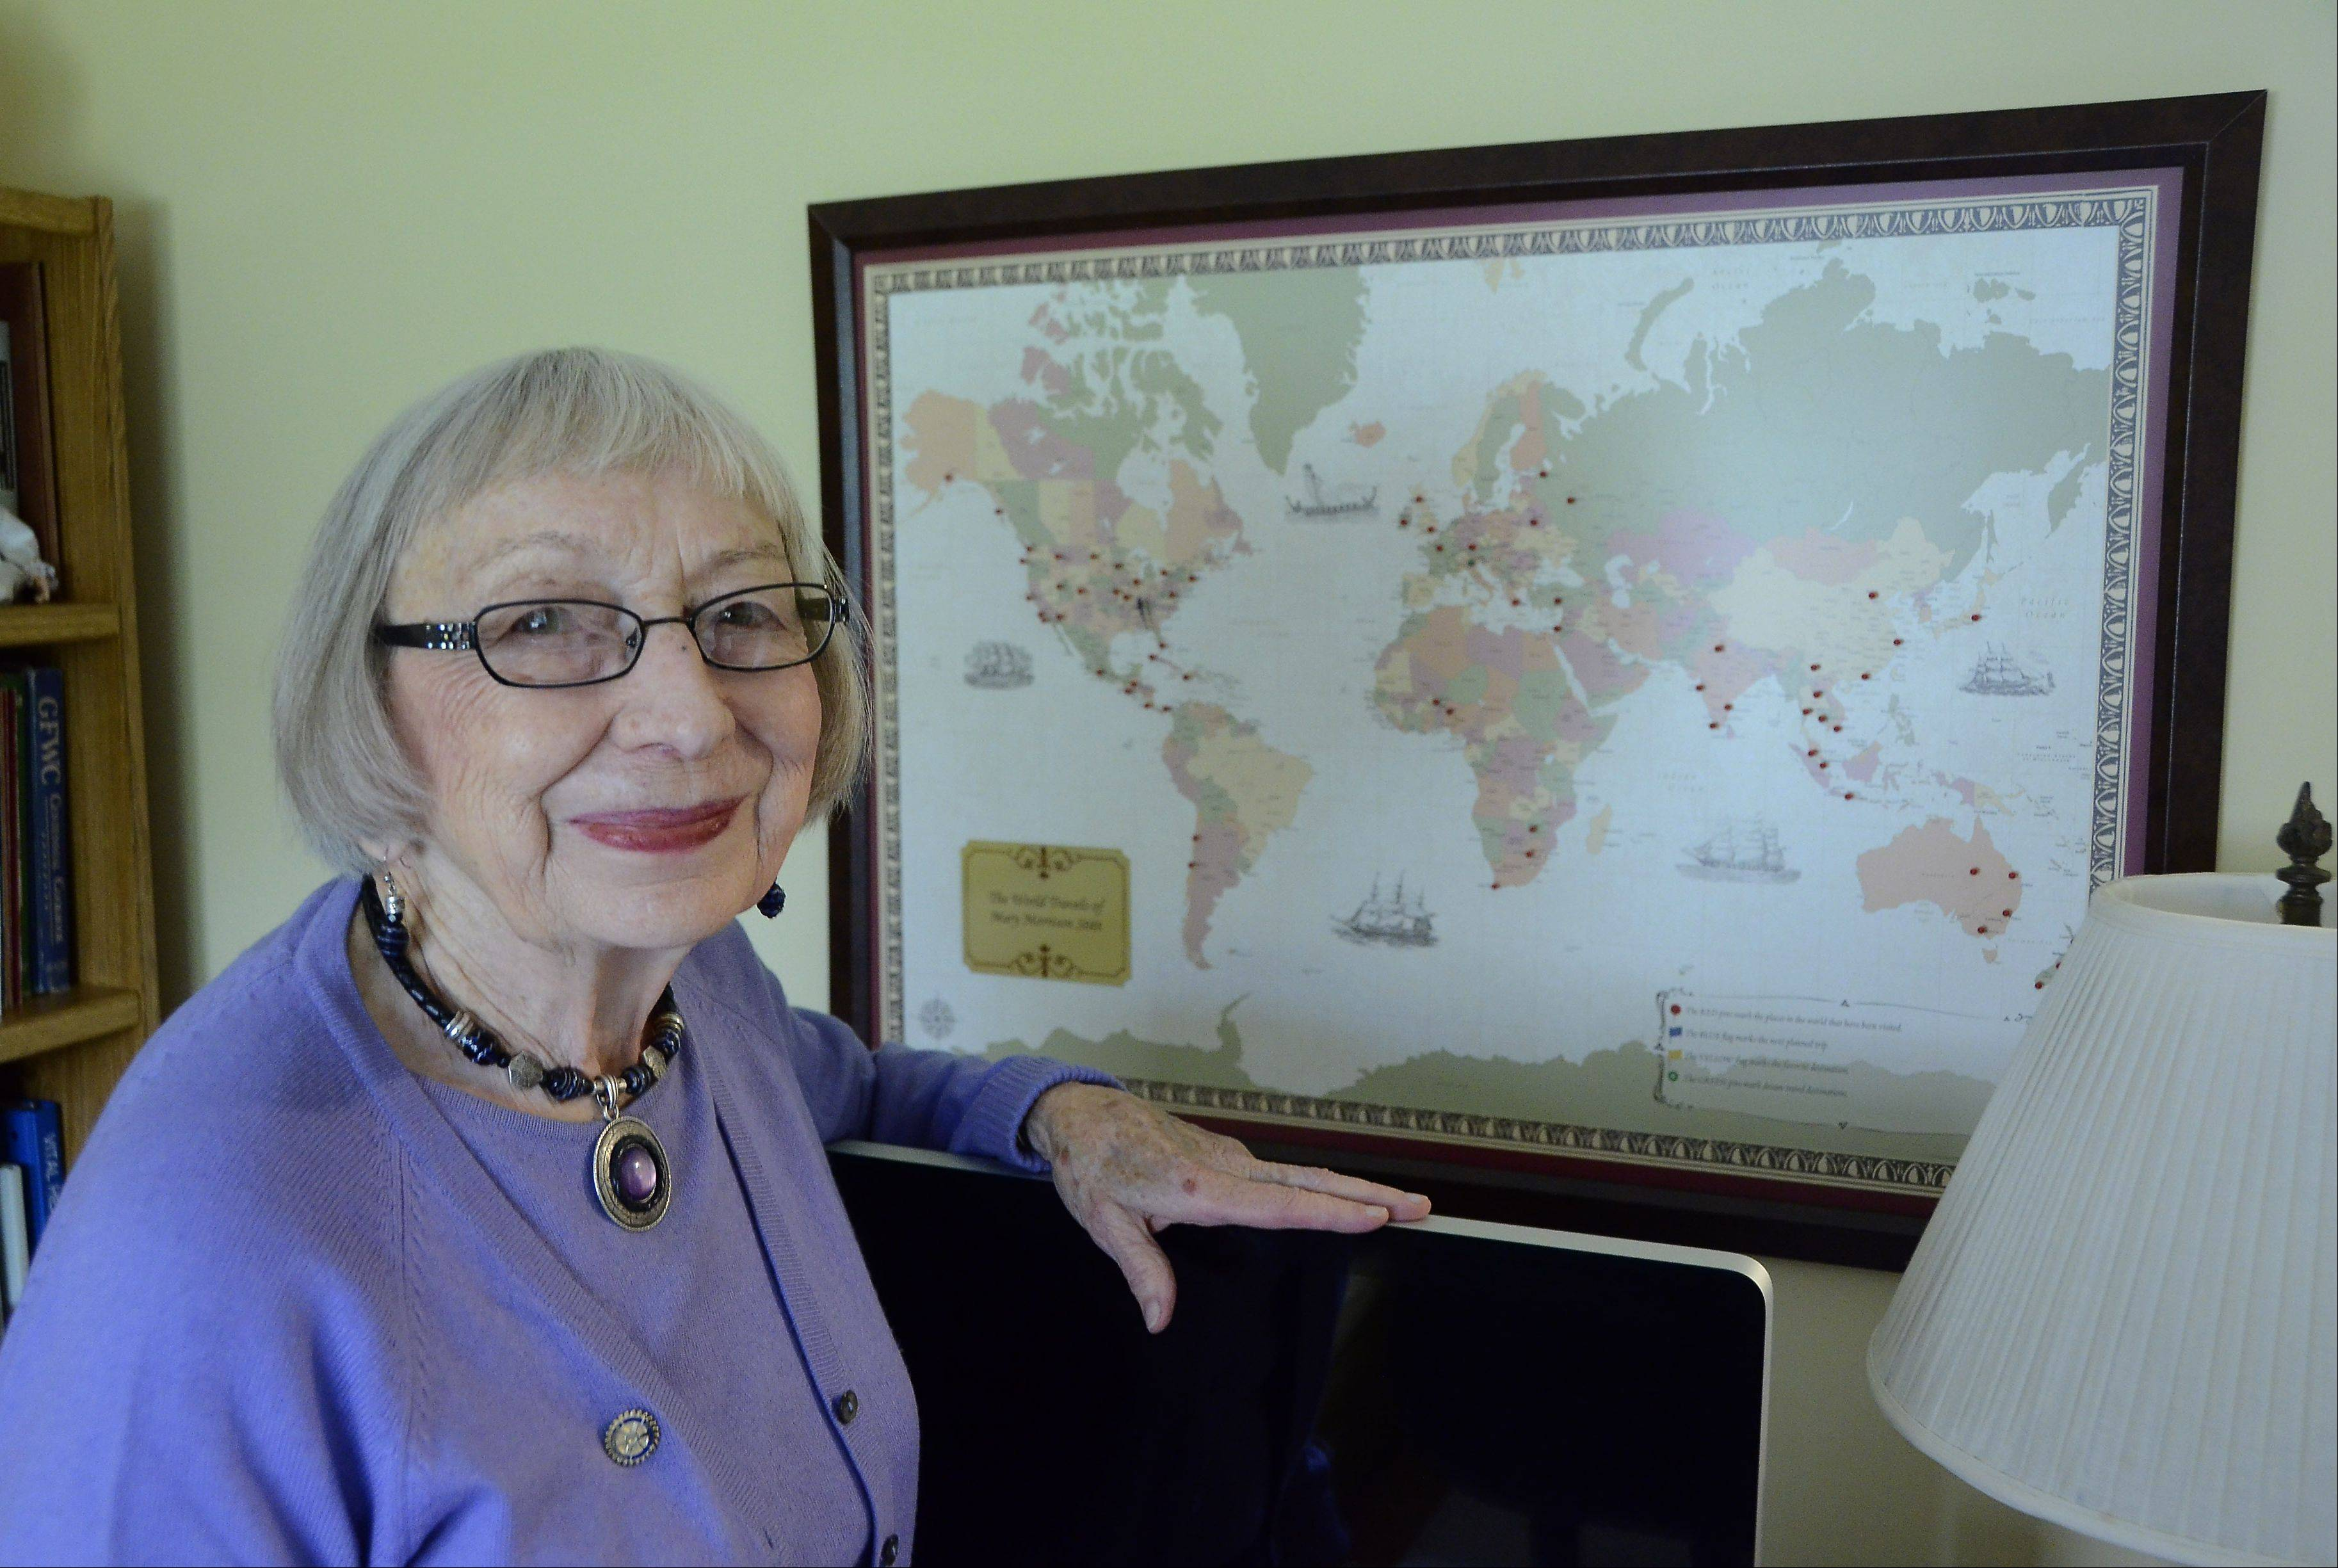 Mary Stitt, 87, of Arlington Heights is planning her fourth trip to Nigeria, where she helps administer polio vaccines and deliver wheelchairs. Pins on the map show her nearly 50 humanitarian trips since retirement. See story on Page 6.